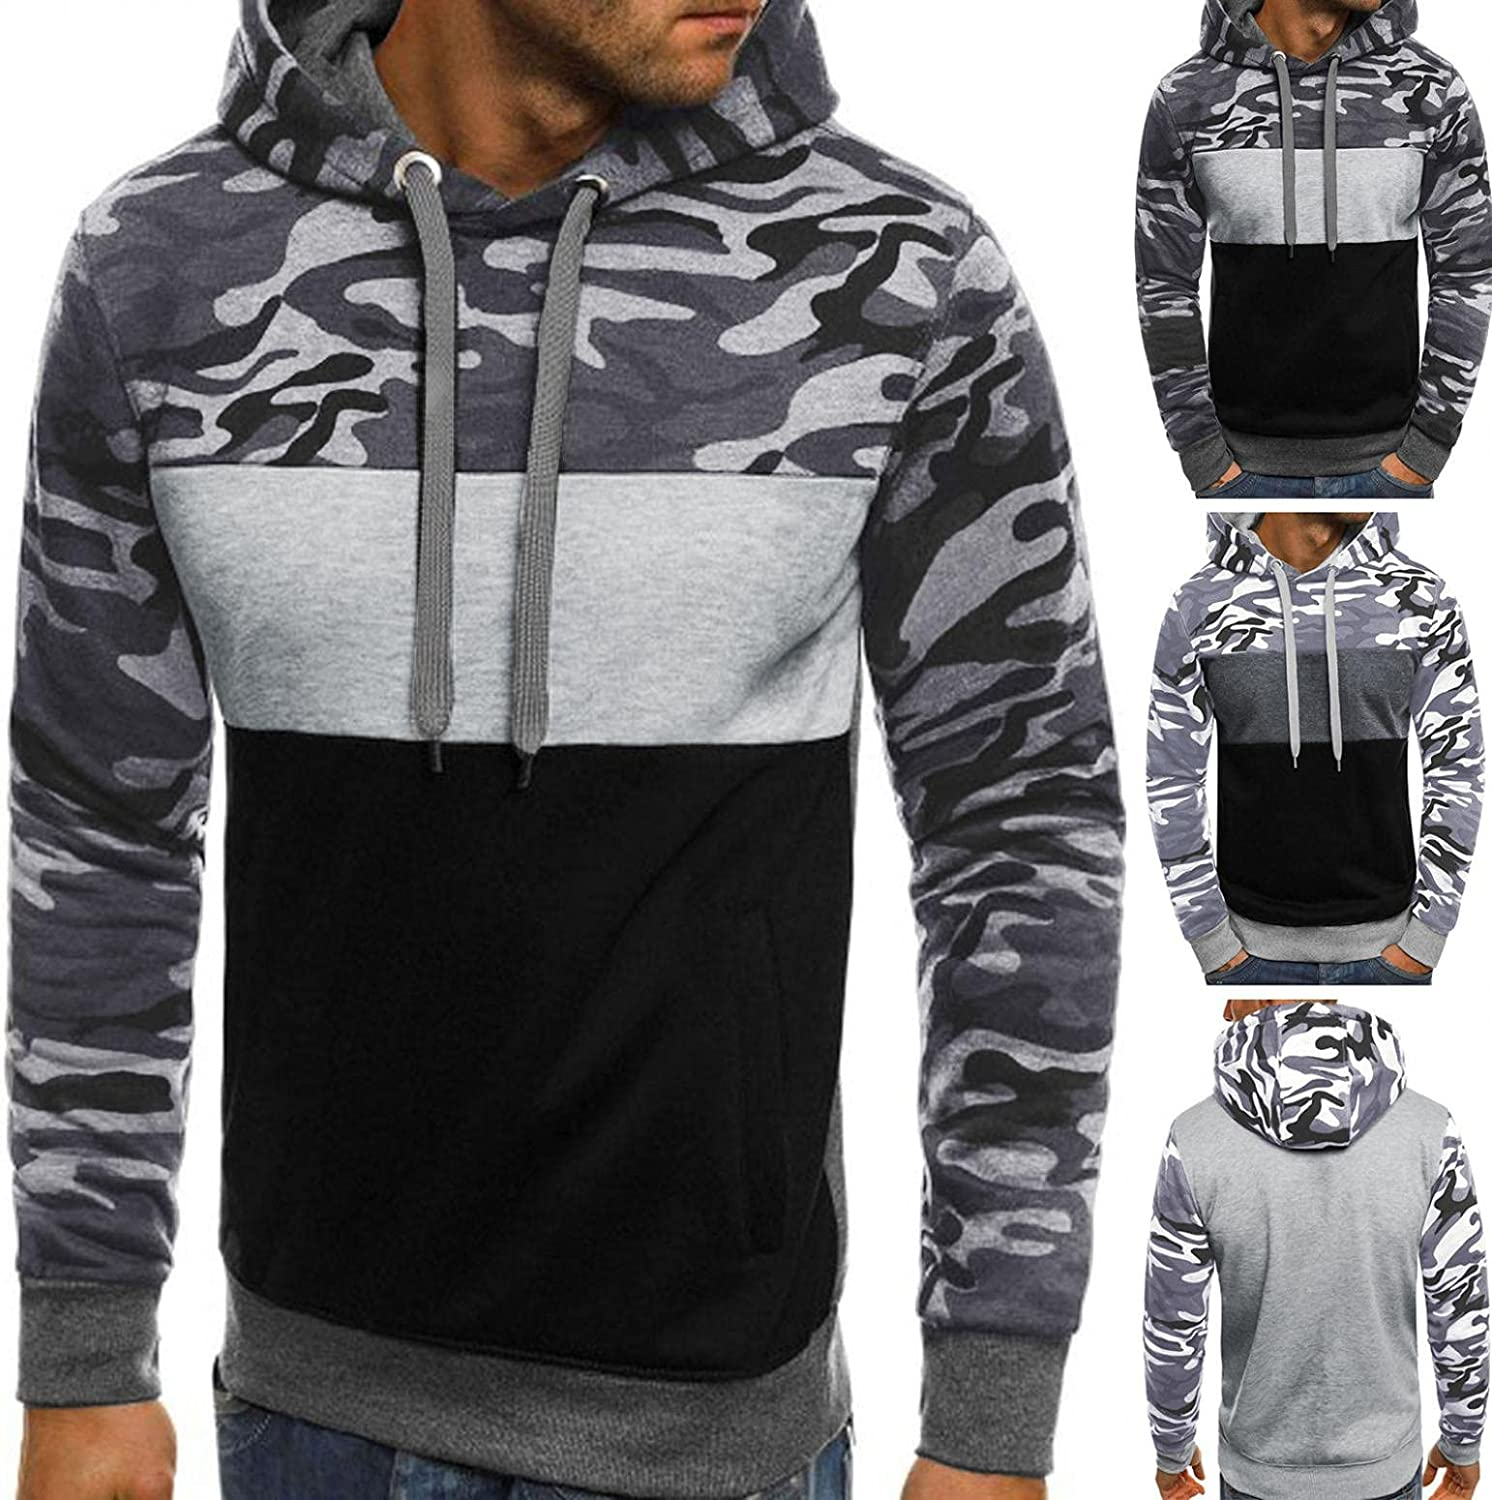 Men Hooded Sweatshirts Casual Sports Camouflage Patchwork Hoodies Pullover Yoga Workout Long Sleeve Tops Men's Sweaters